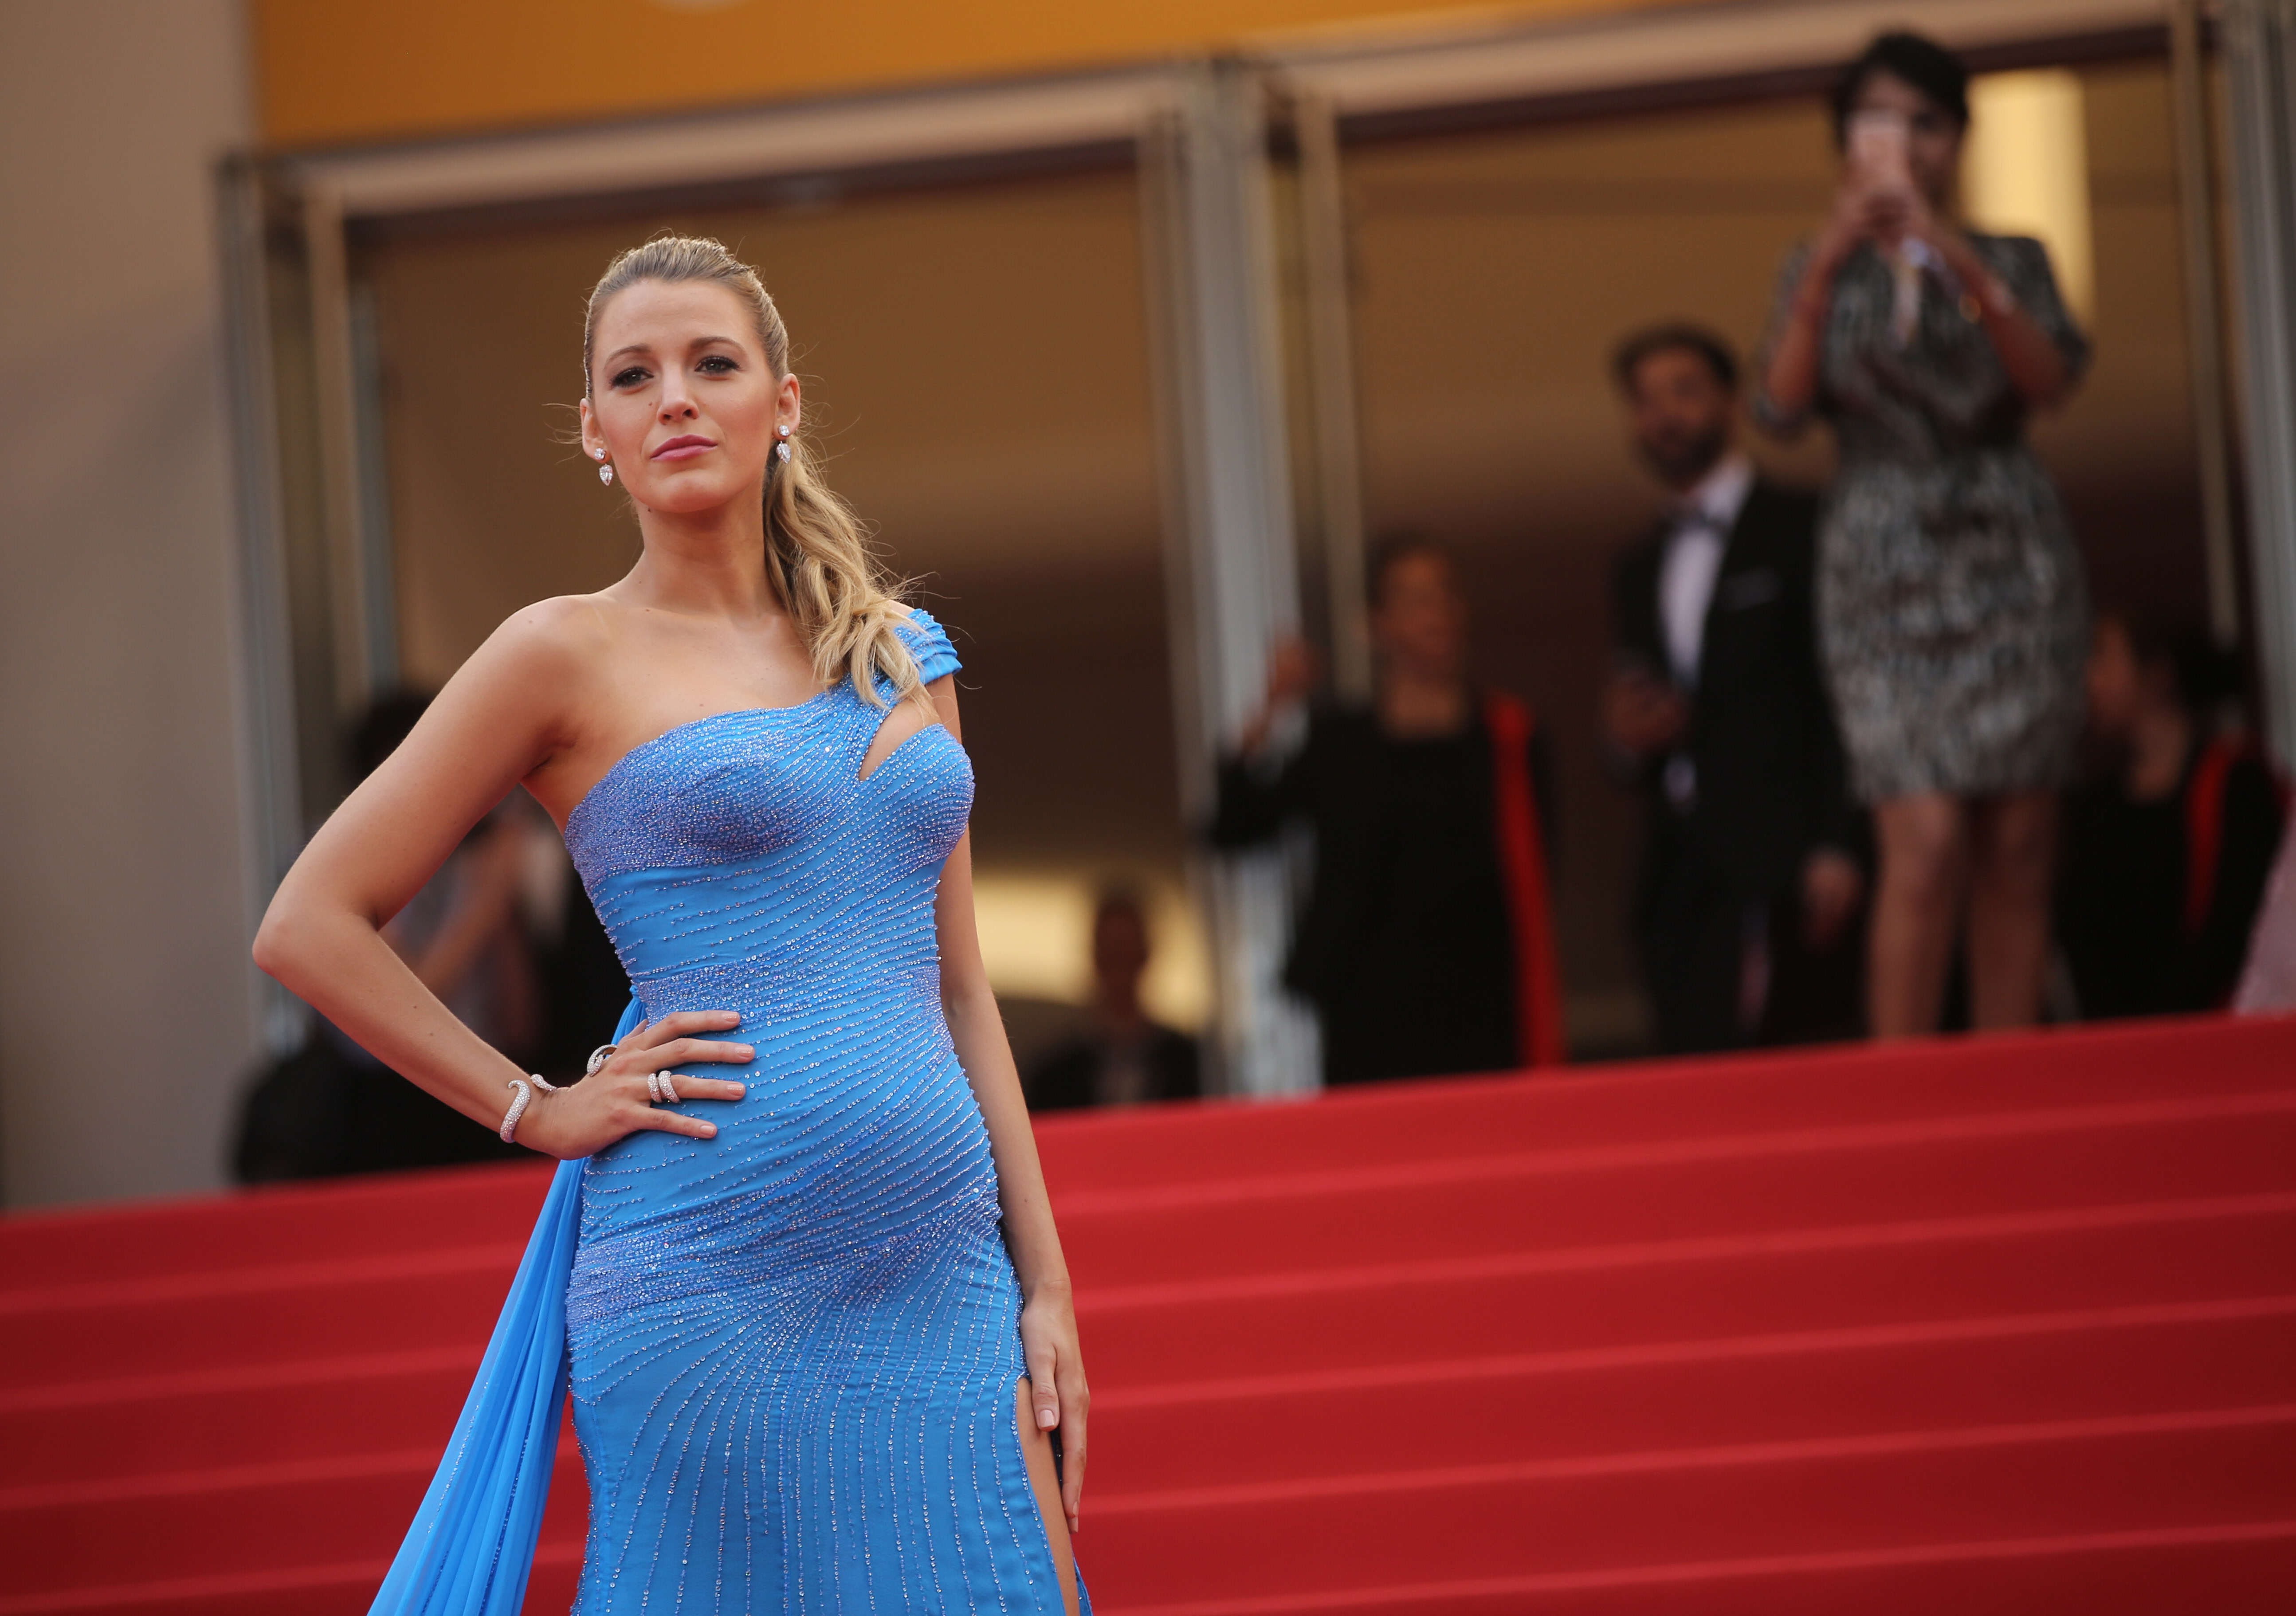 Blake Lively Accused Of Racism After Posting Cannes Instagram Shot PA 26330008